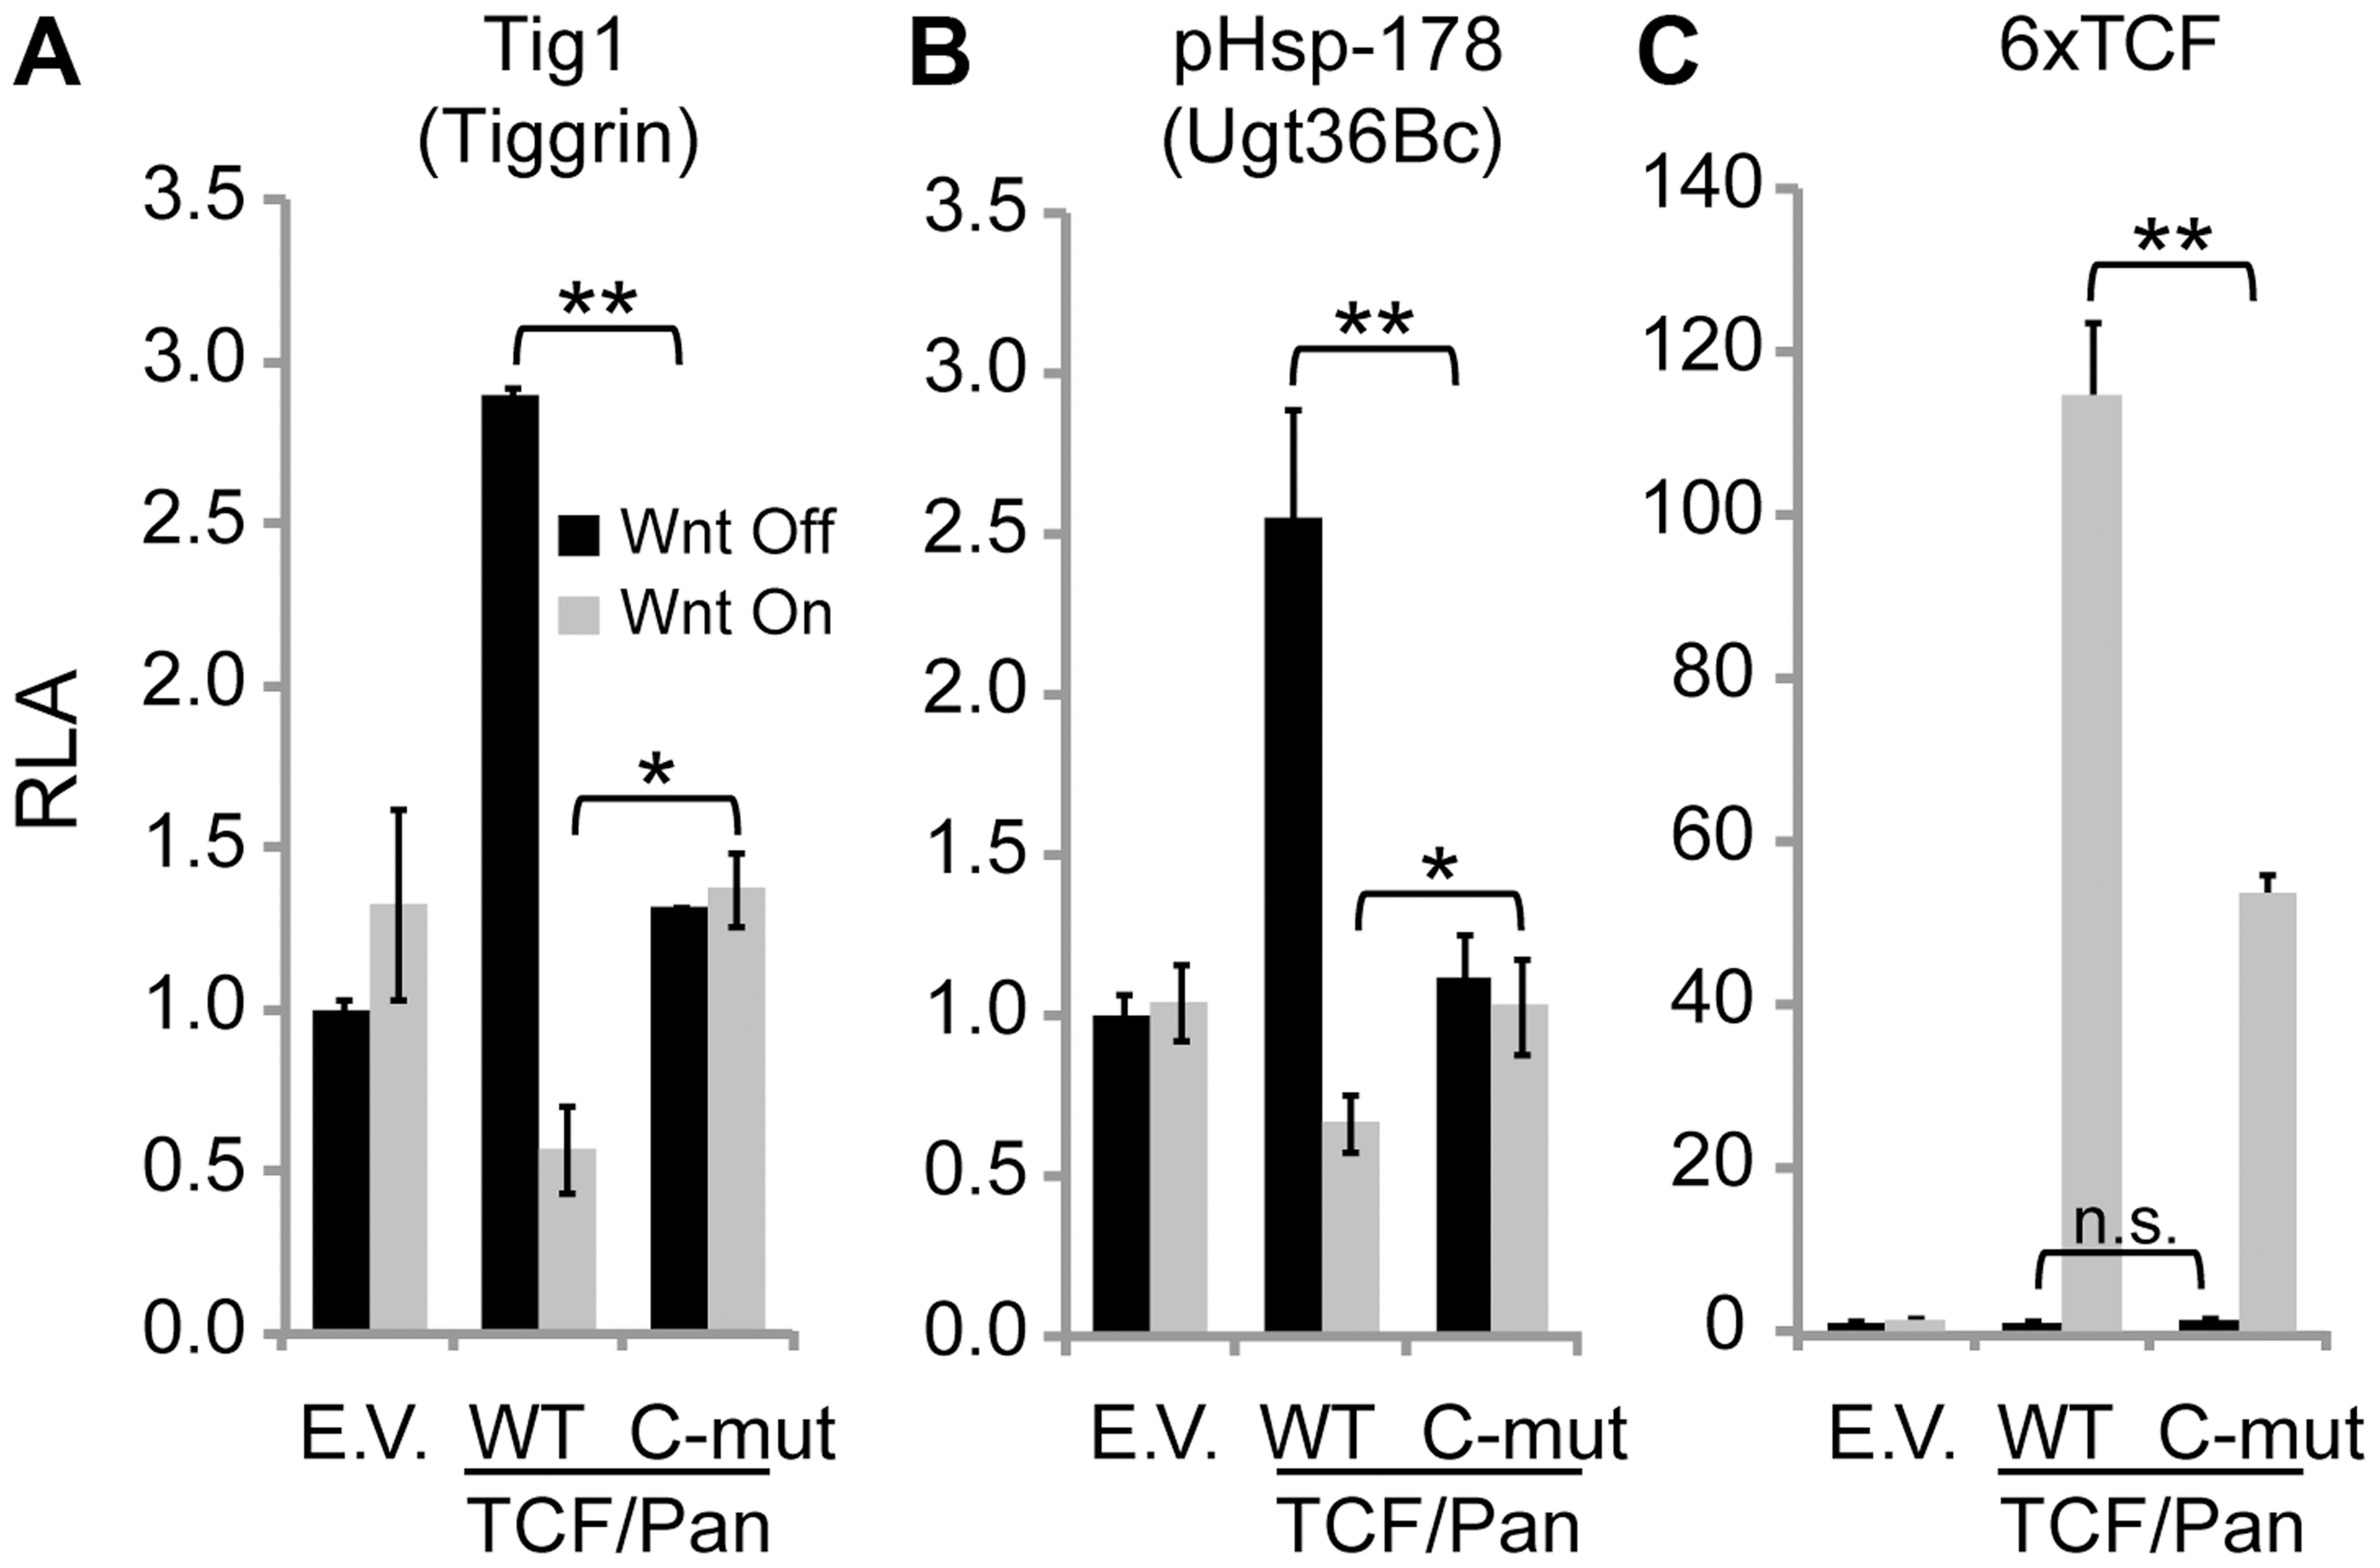 The C-clamp domain of TCF/Pan is required for Wnt-mediated repression of <i>Tig</i> and <i>Ugt36Bc</i> W-CRMs.